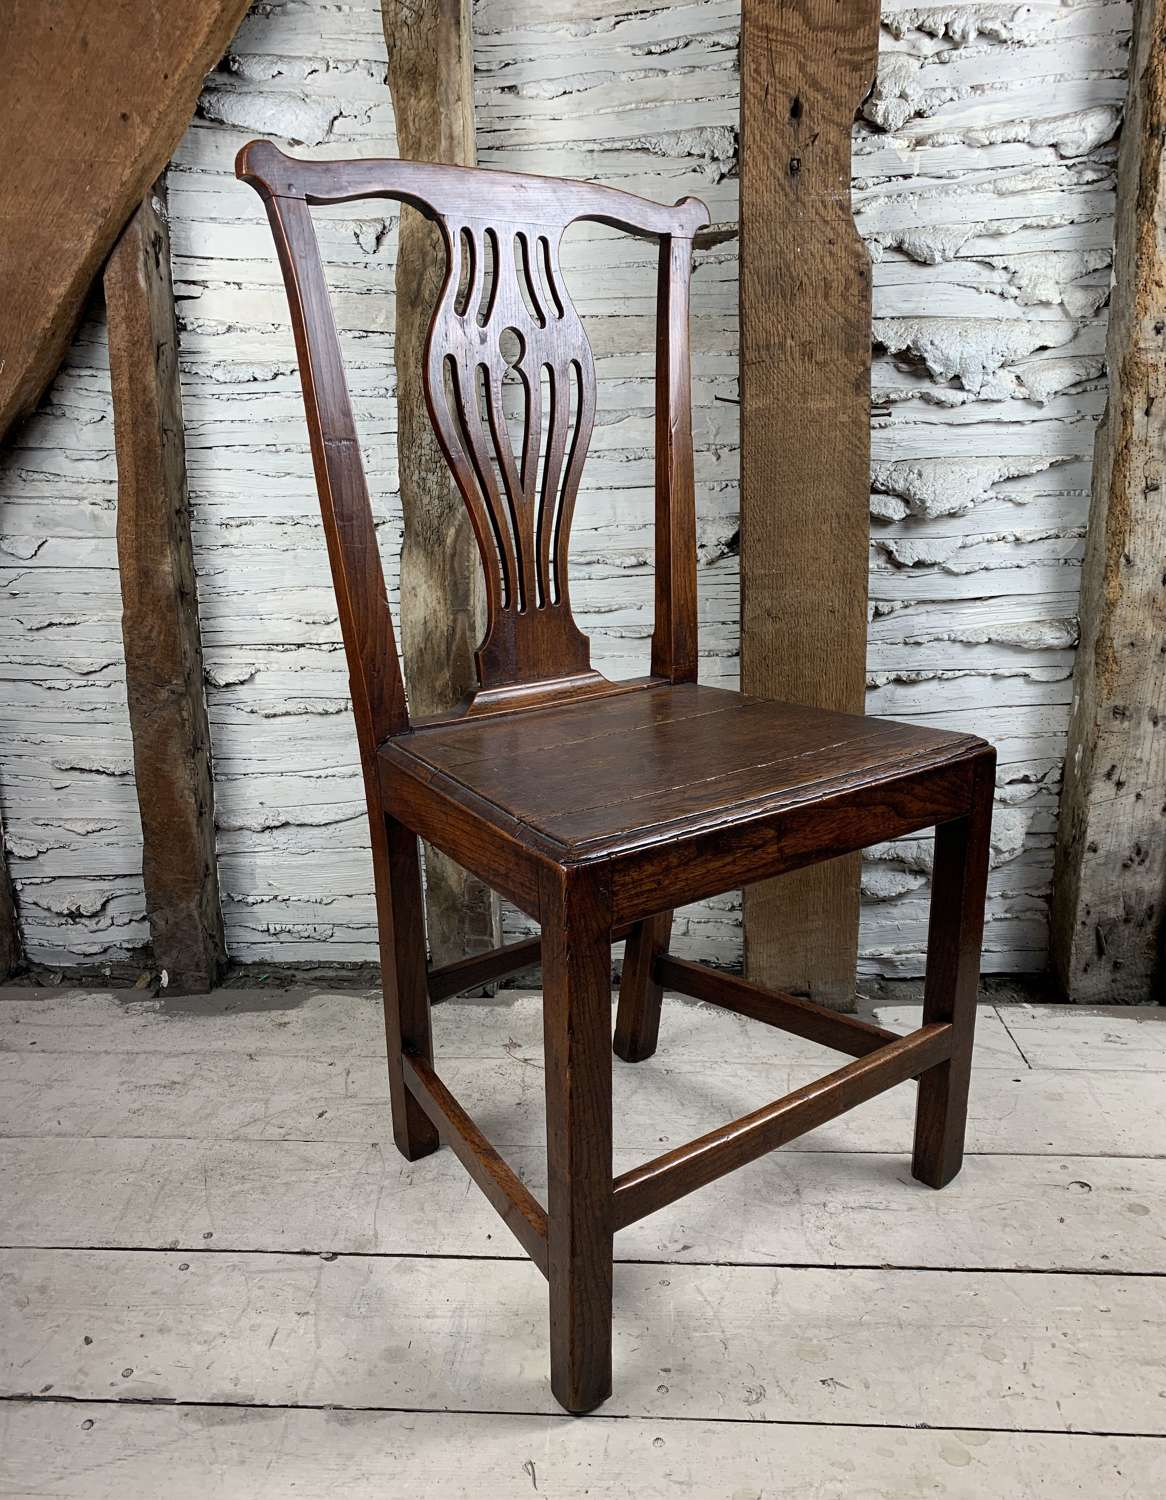 Georgian Provincial Oak Country Chair in Chippendale Style